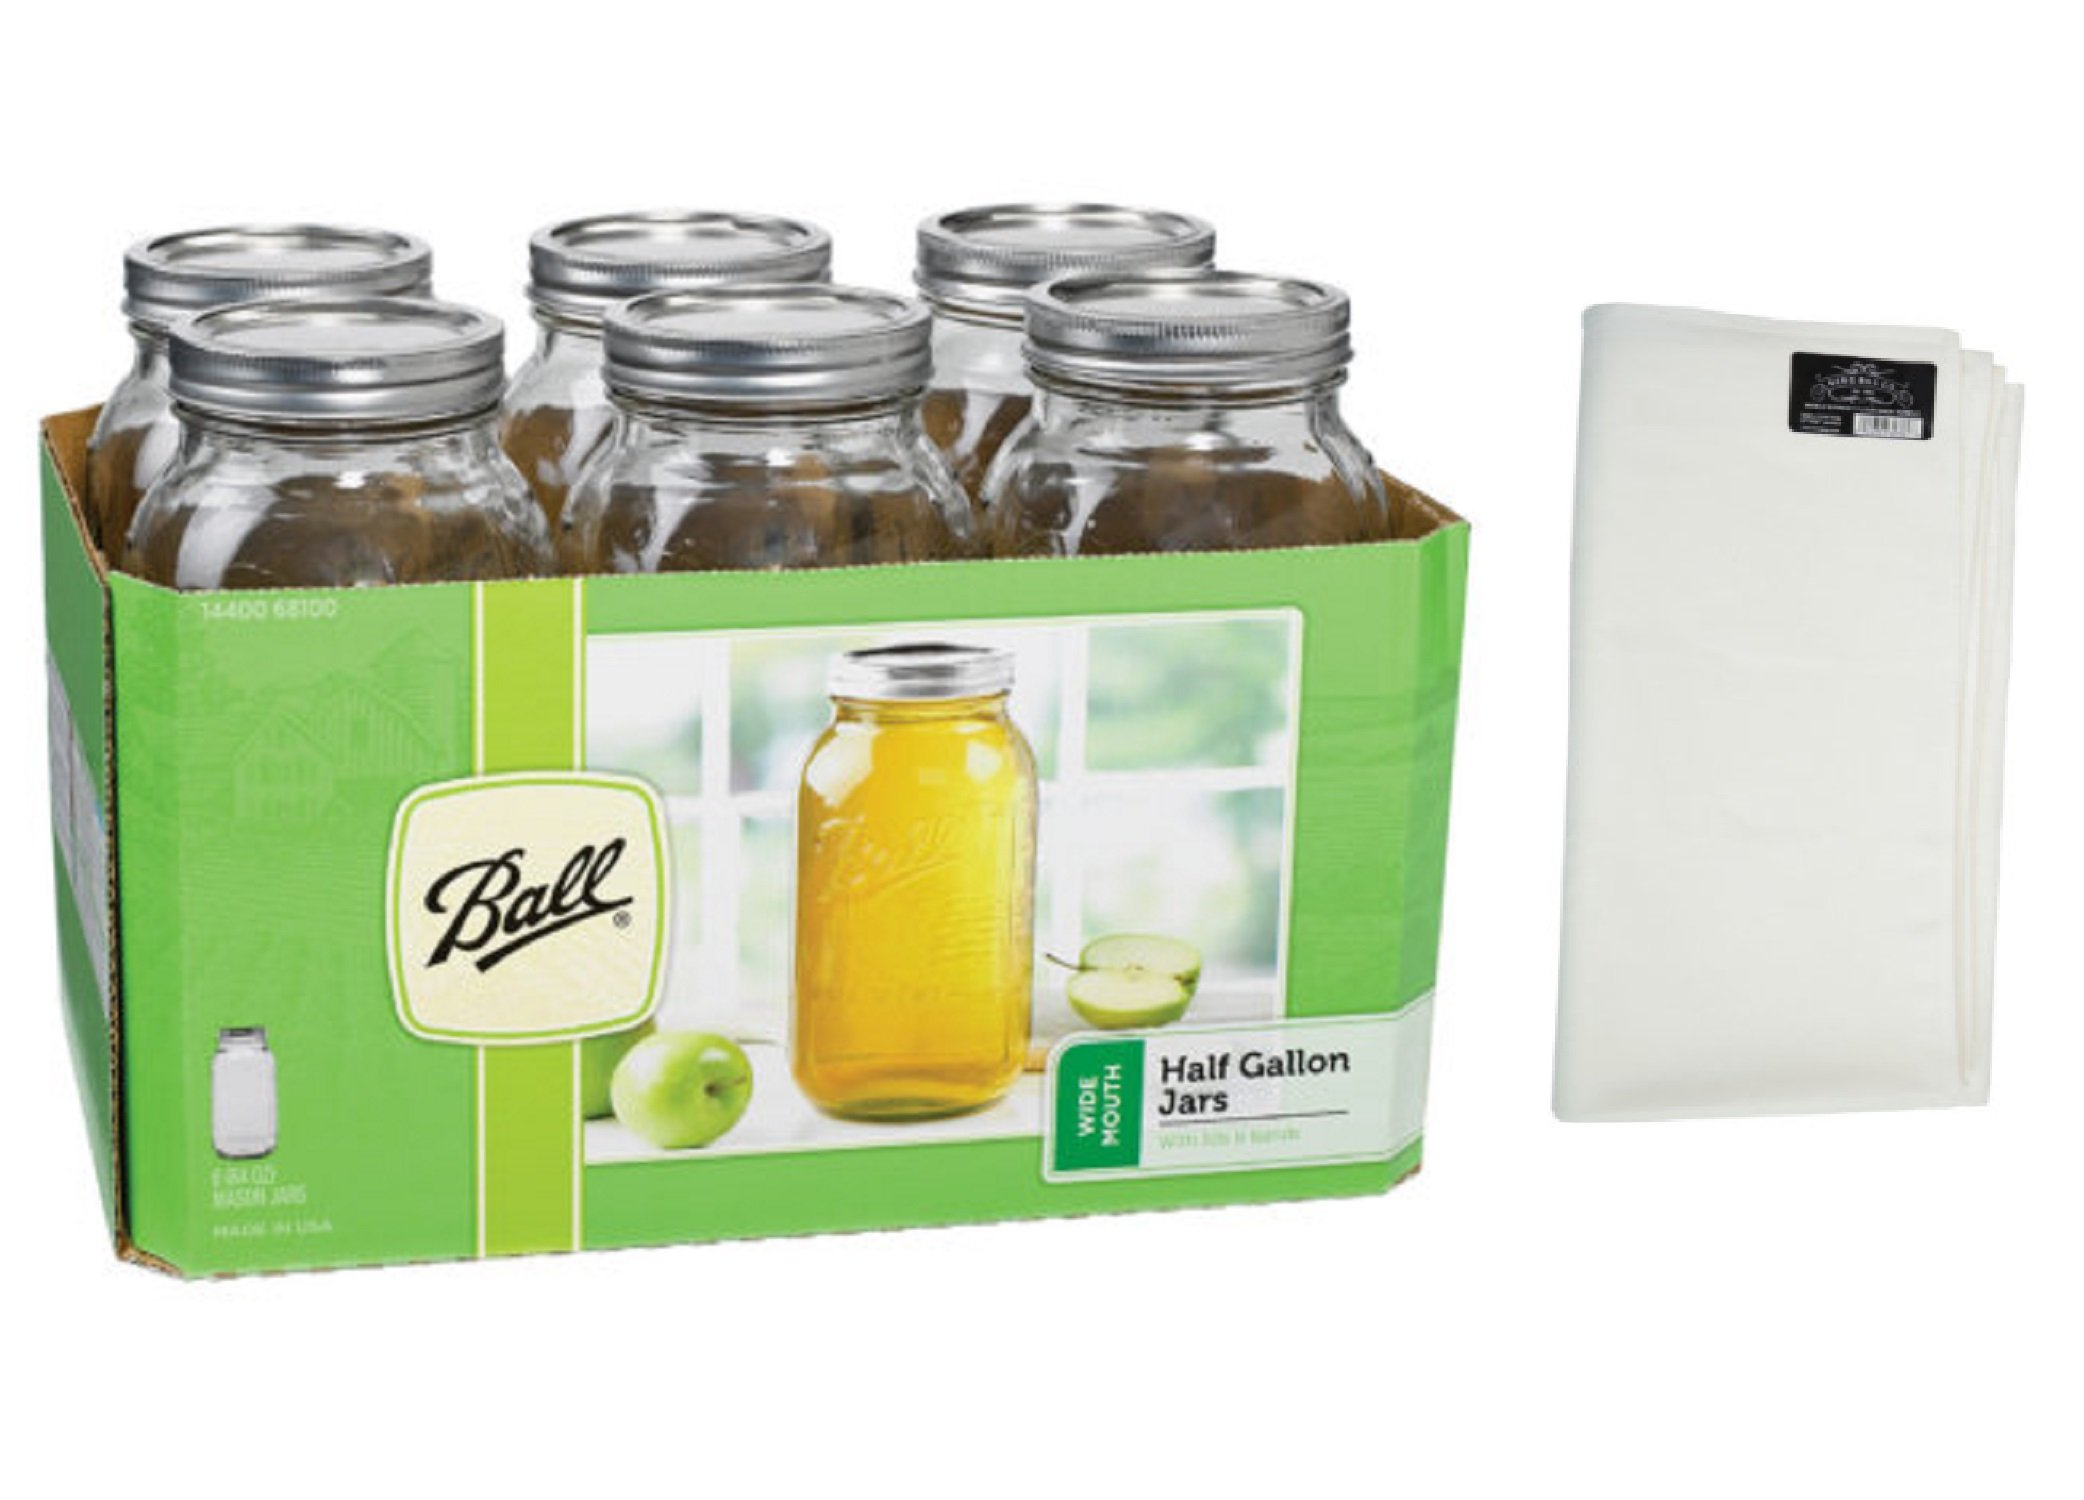 Ball 64 Oz Half Gallon Clear Wide Mouth Glass Canning Jars - 6 Pk